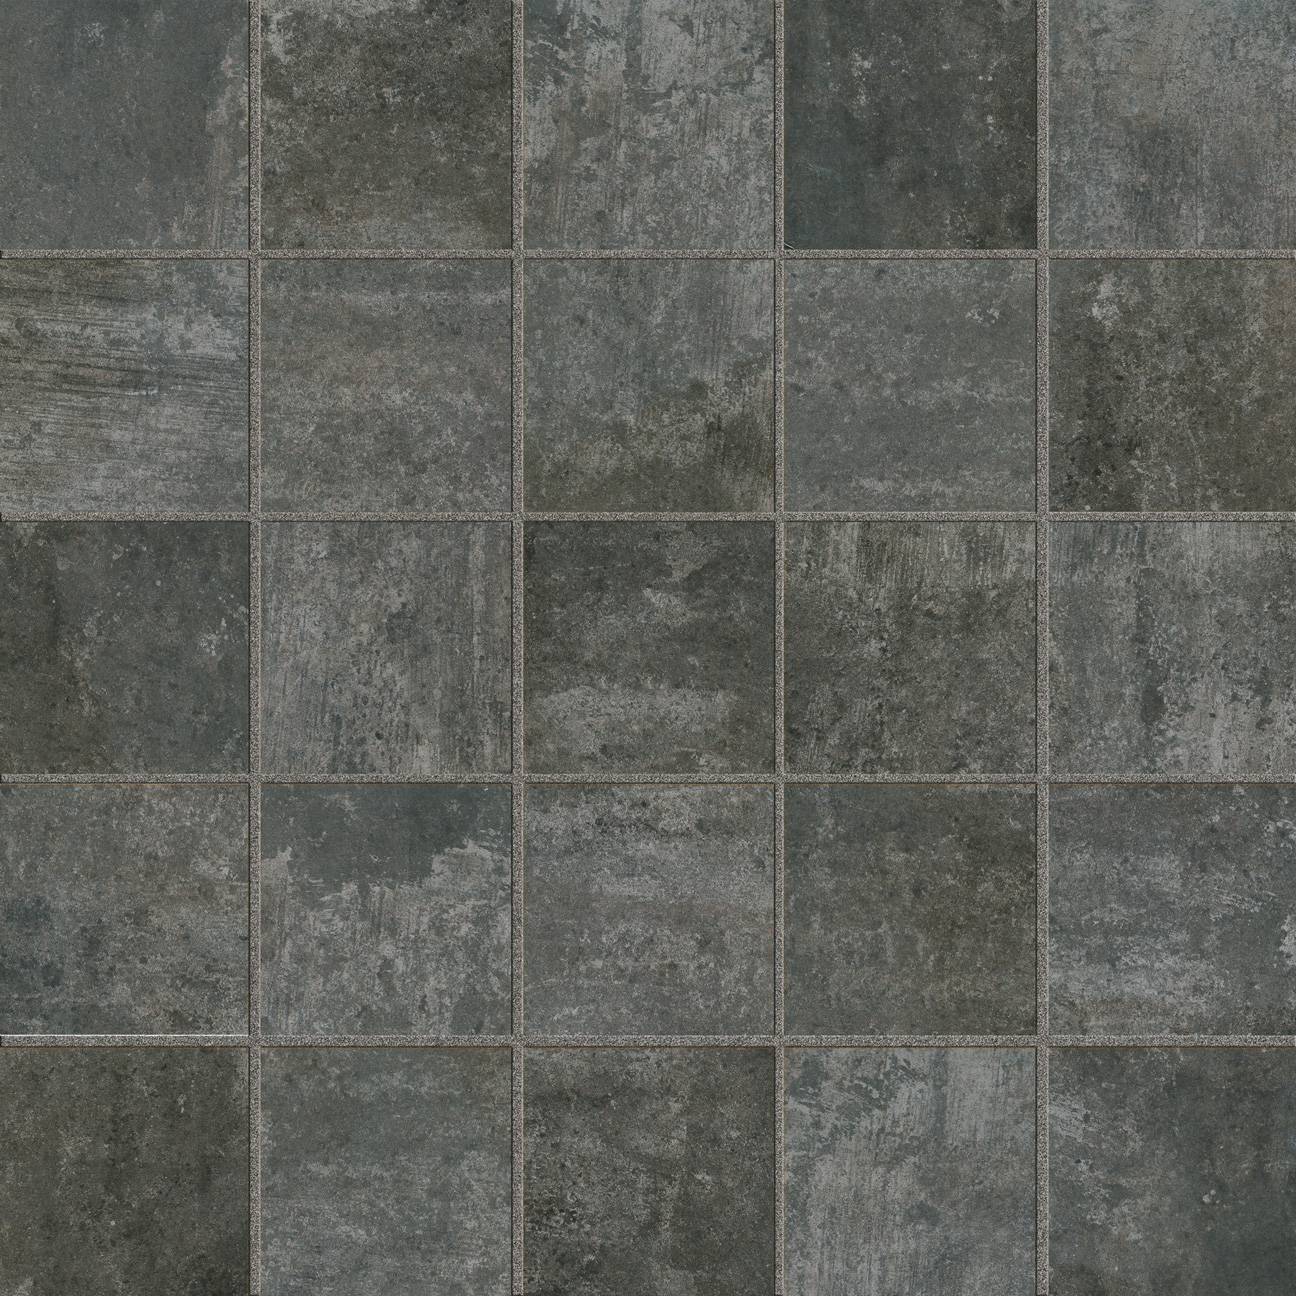 Natural Porcelain Tile From Our Heritage Tile